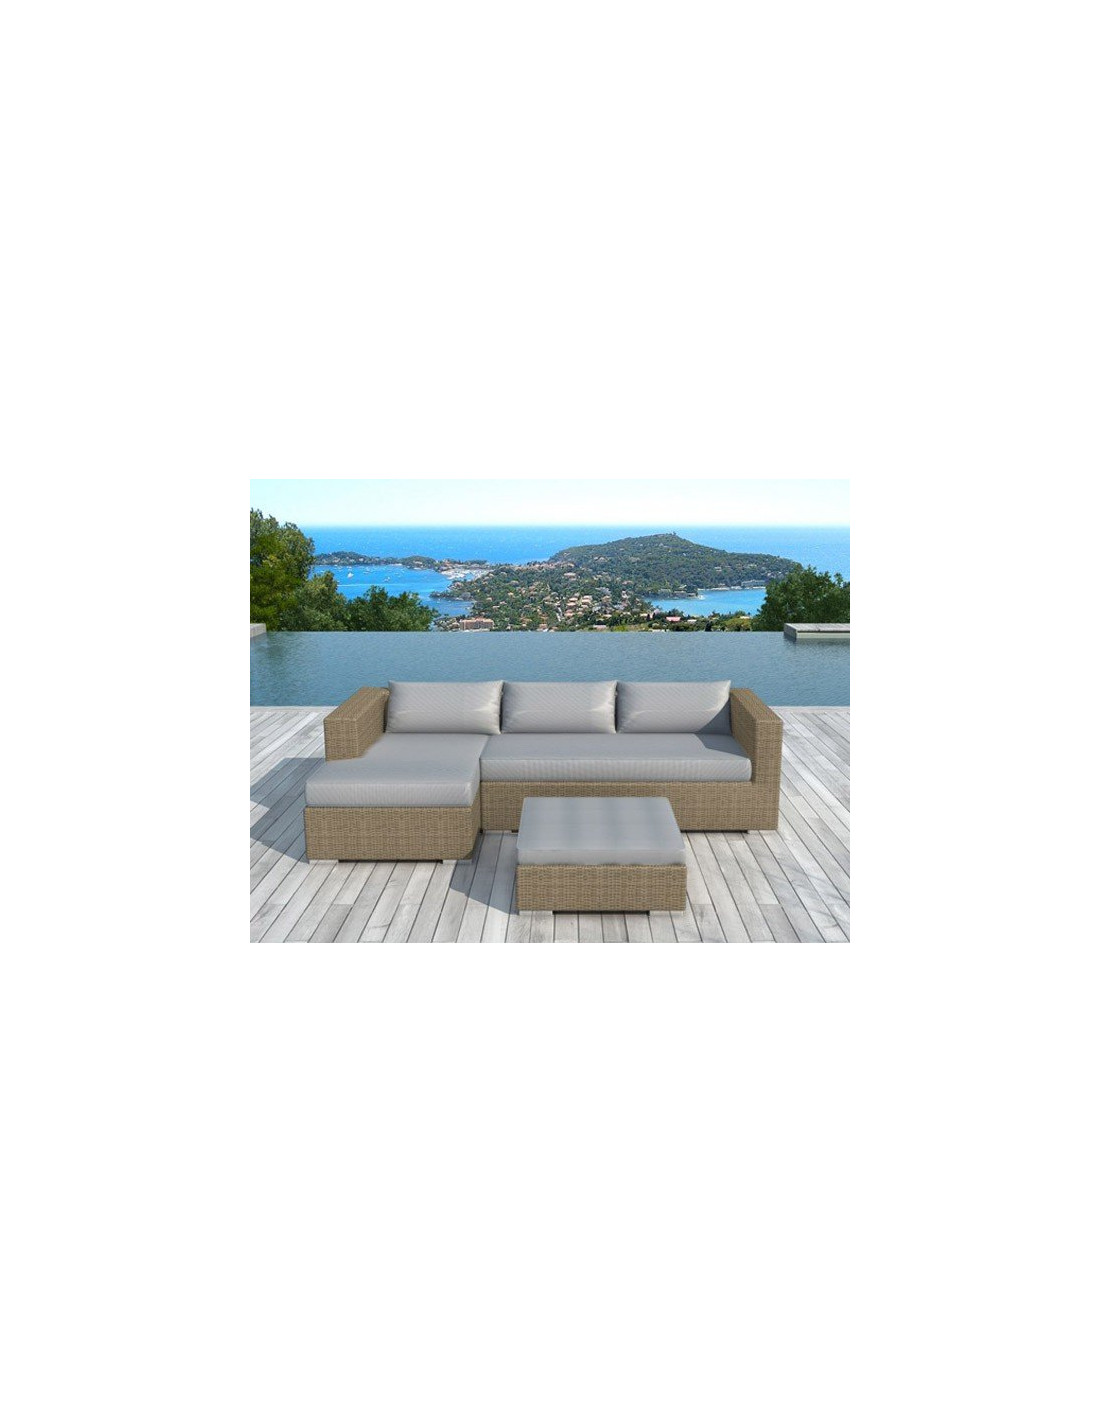 Emejing salon de jardin tresse rond photos awesome for Chaise osier tresse